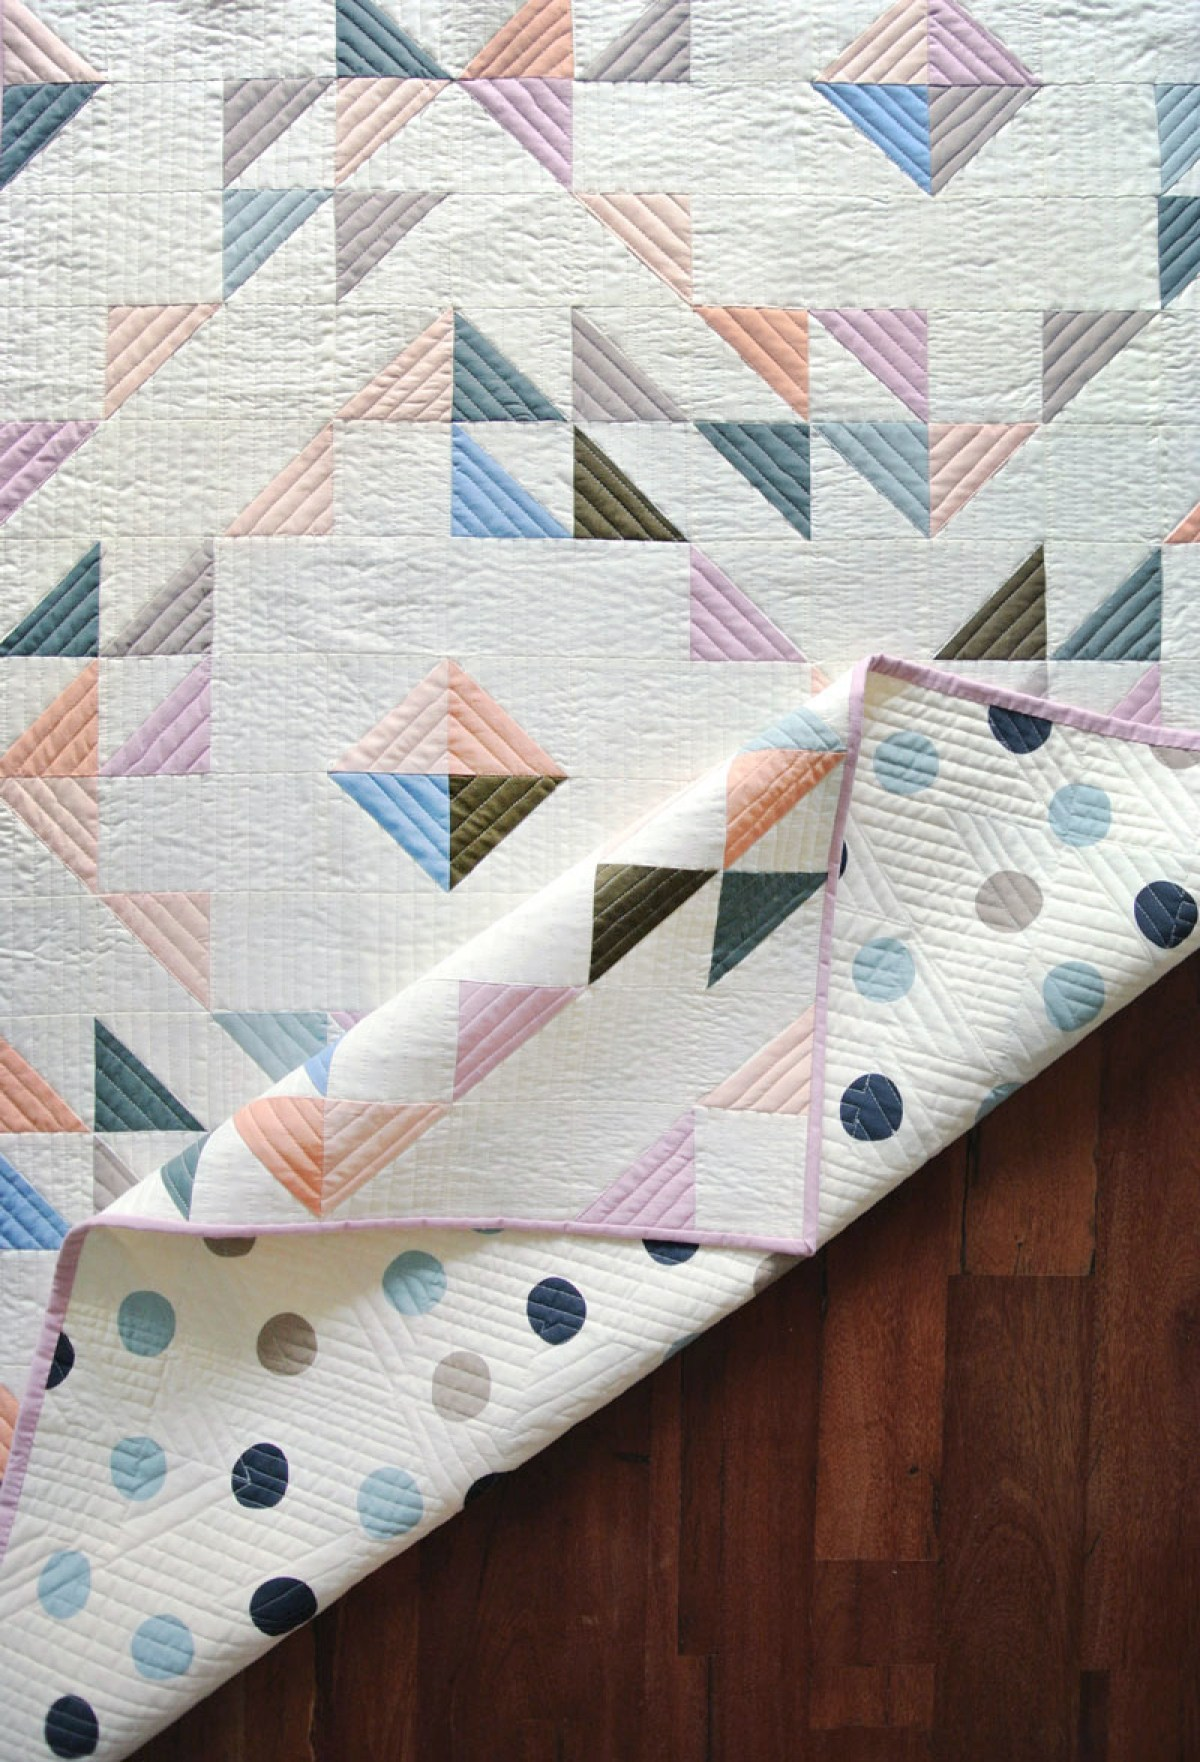 Quilt Patterns For Beginners Awesome Design Inspiration